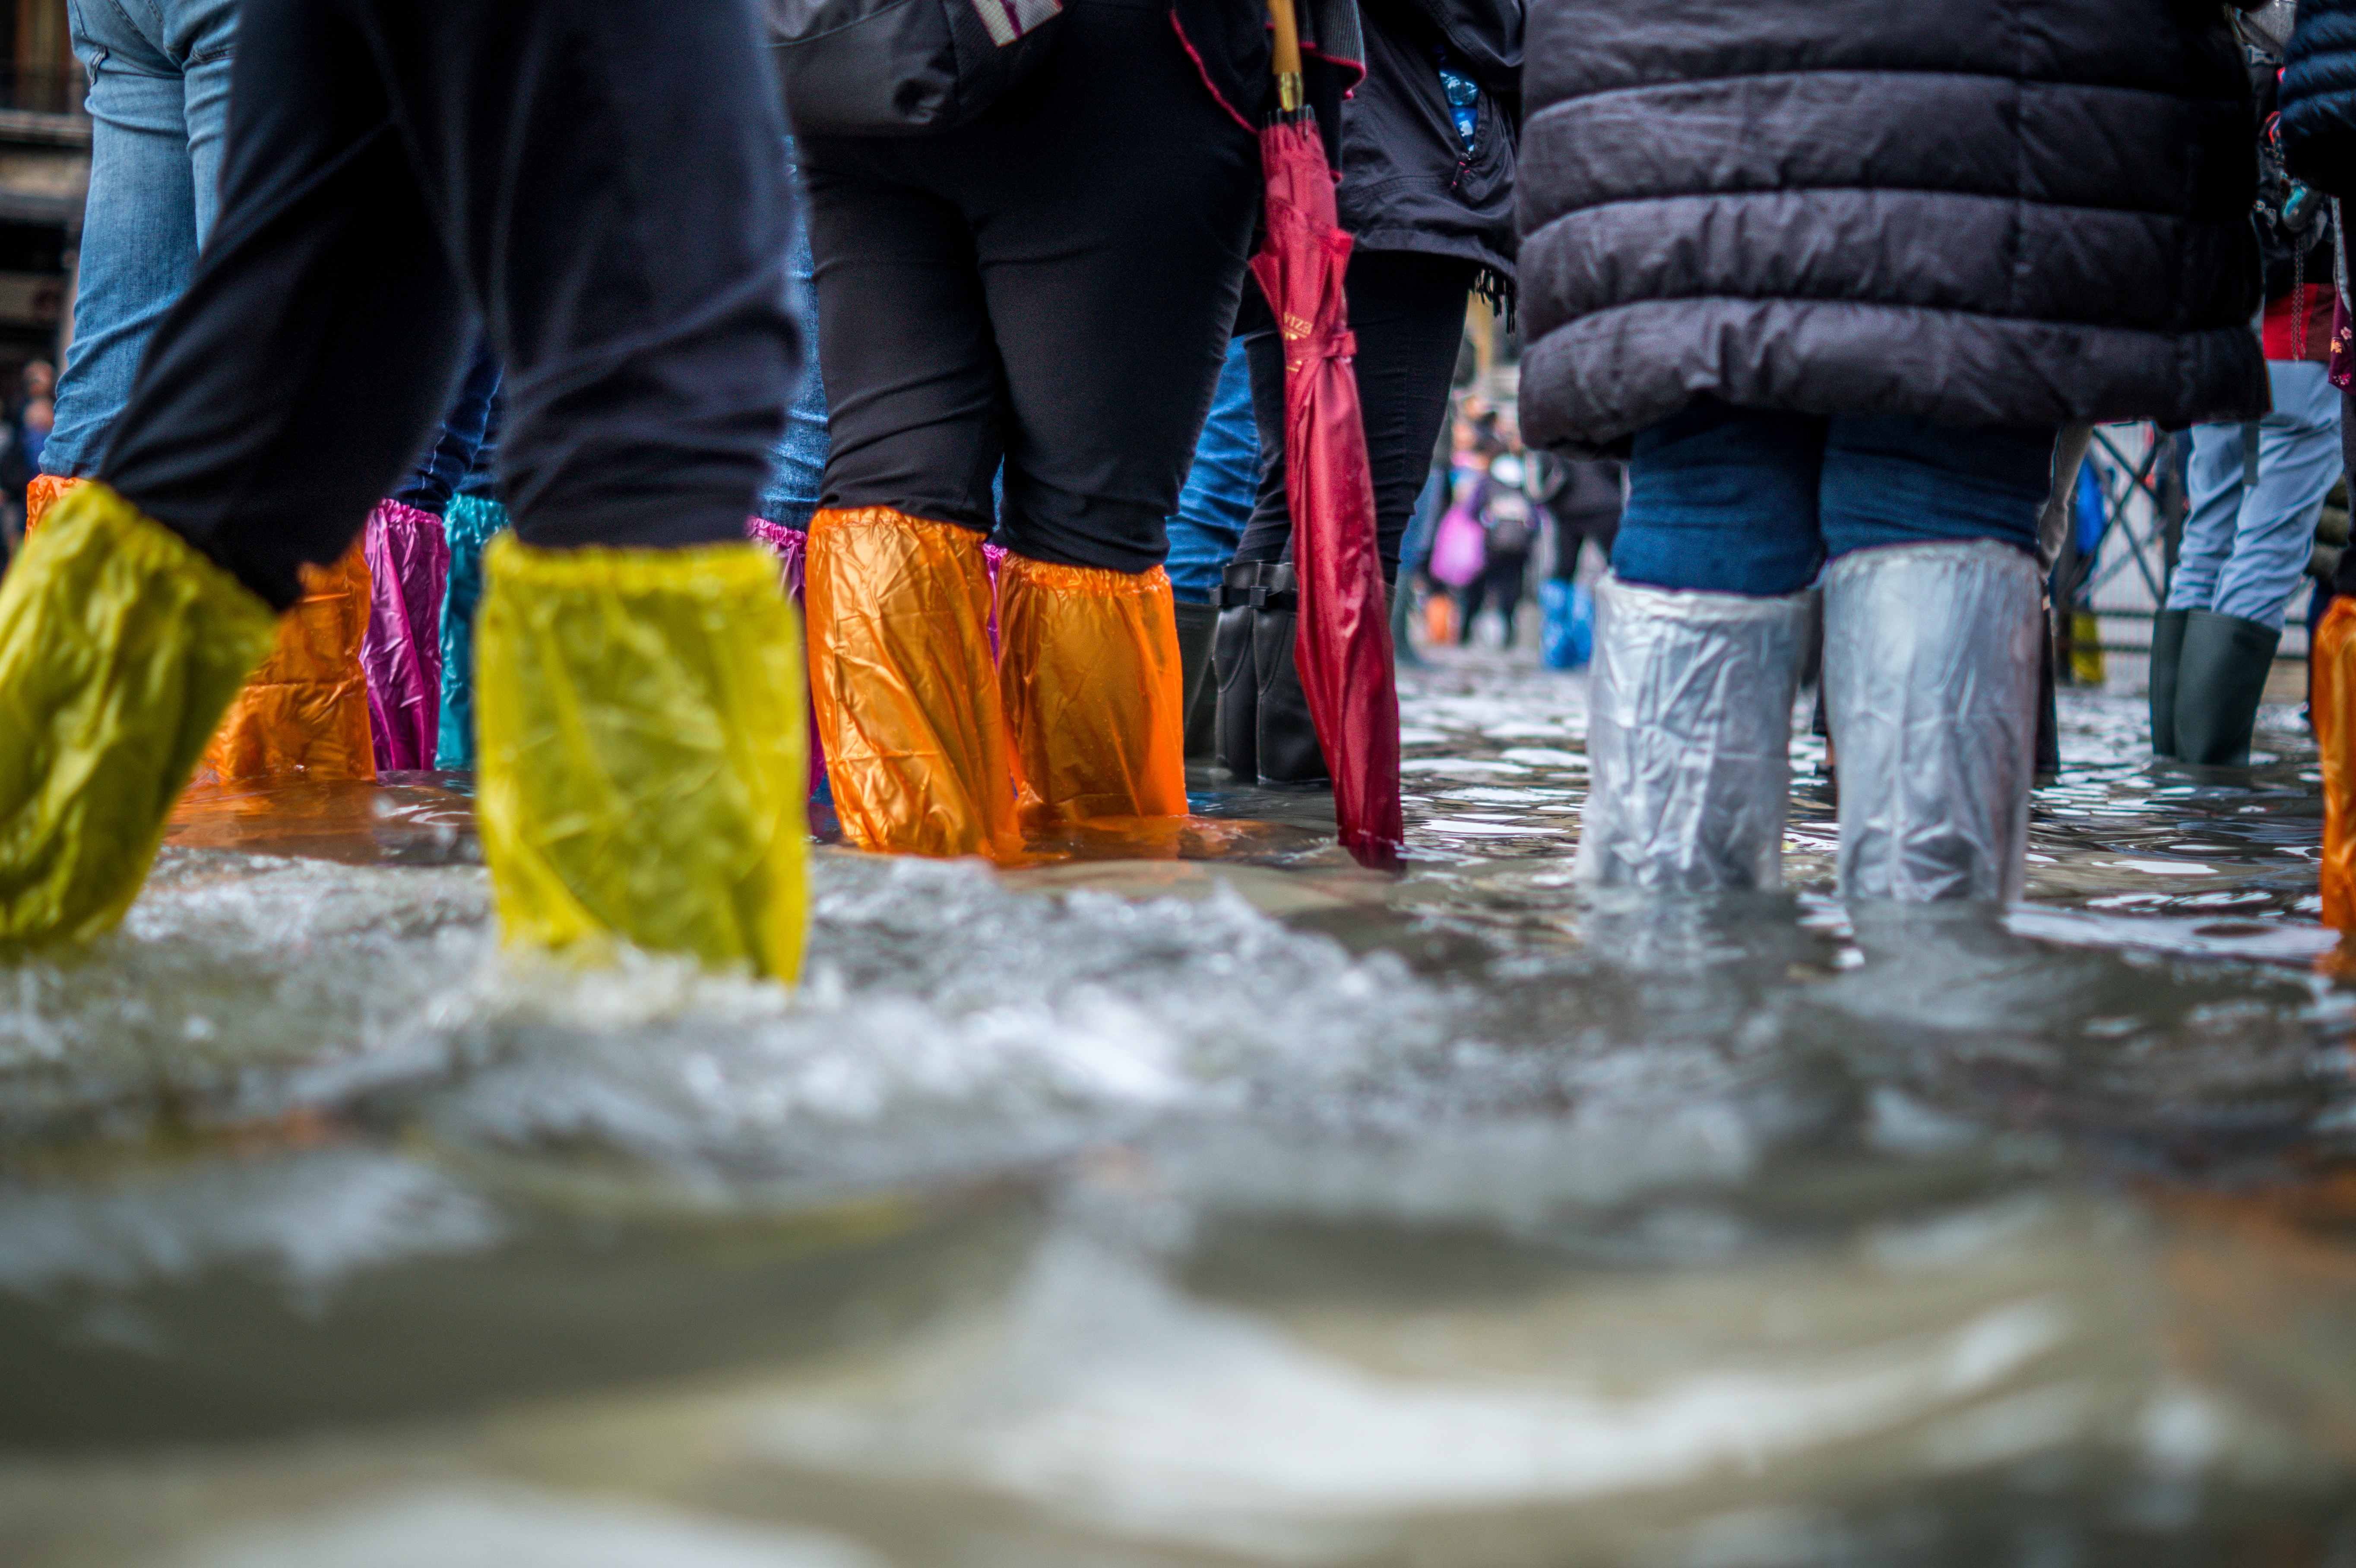 A group of people wearing wellies during a flood